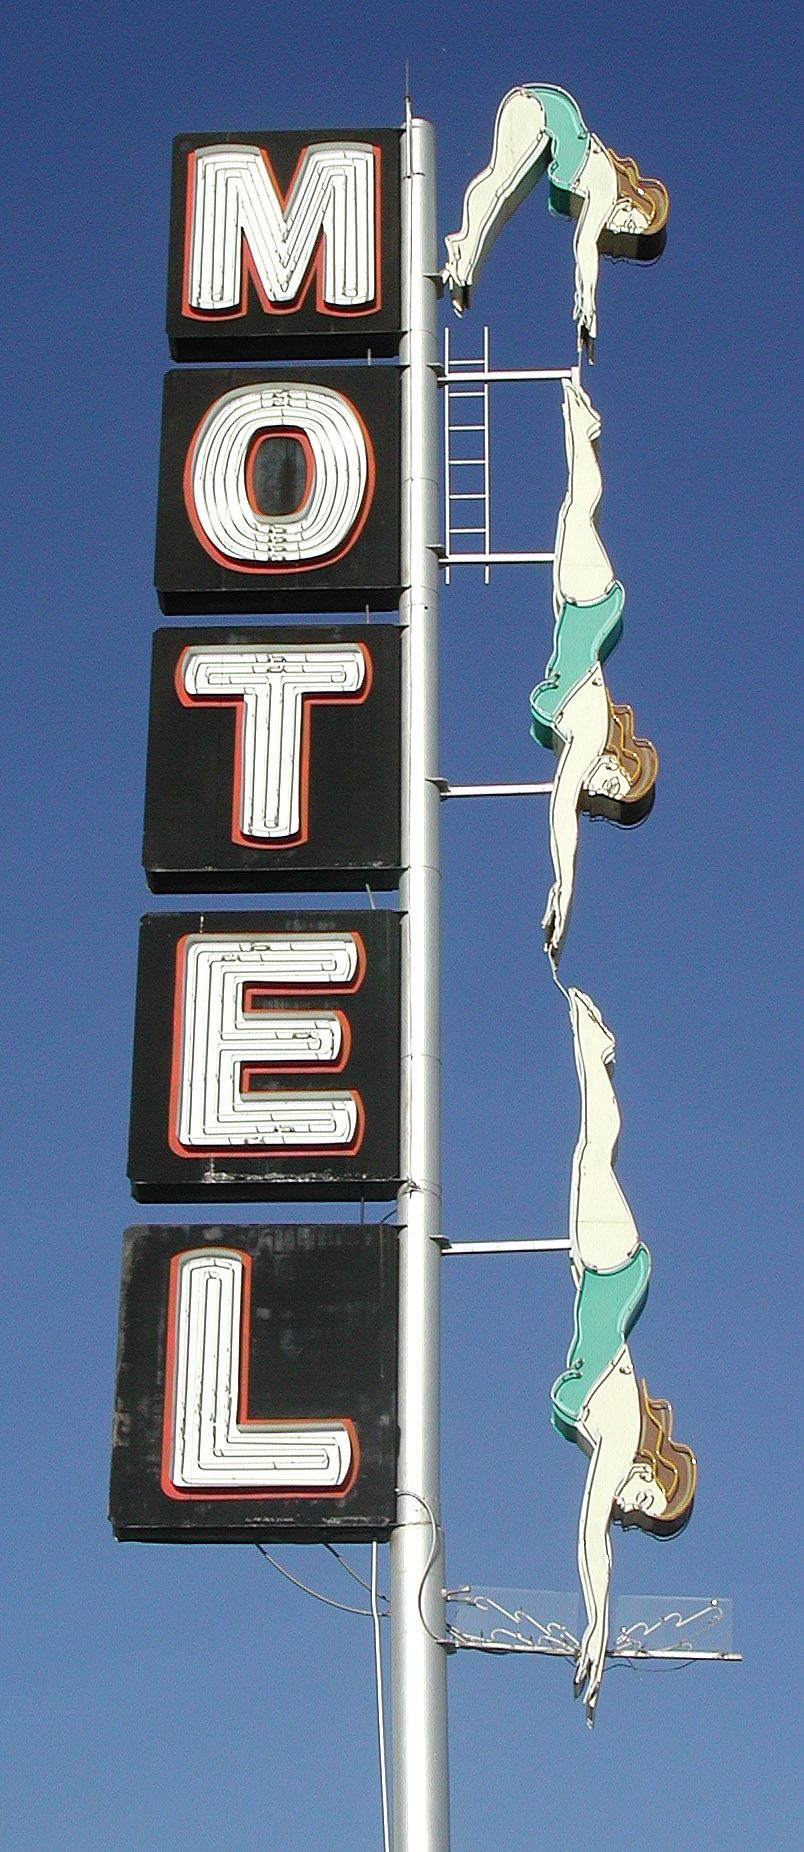 Starlite Motel S Diving Woman Sign Destroyed During Last Week S